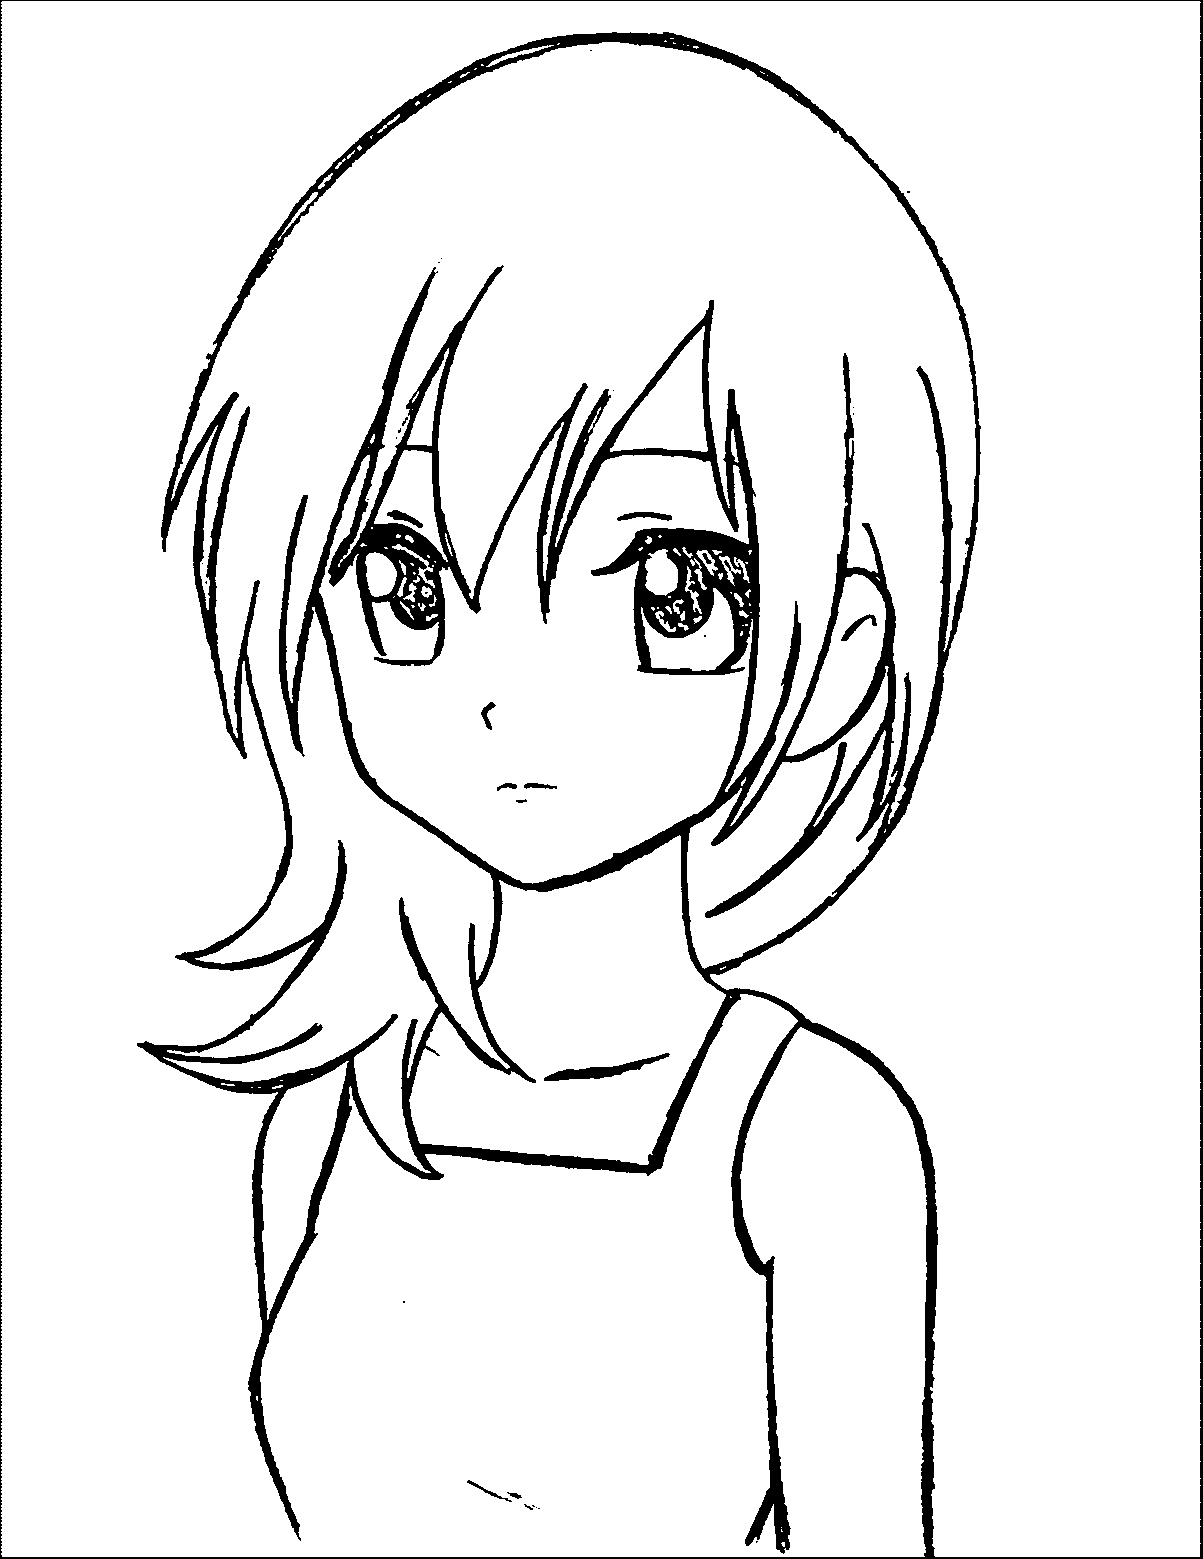 manger coloring page - manga coloring pages